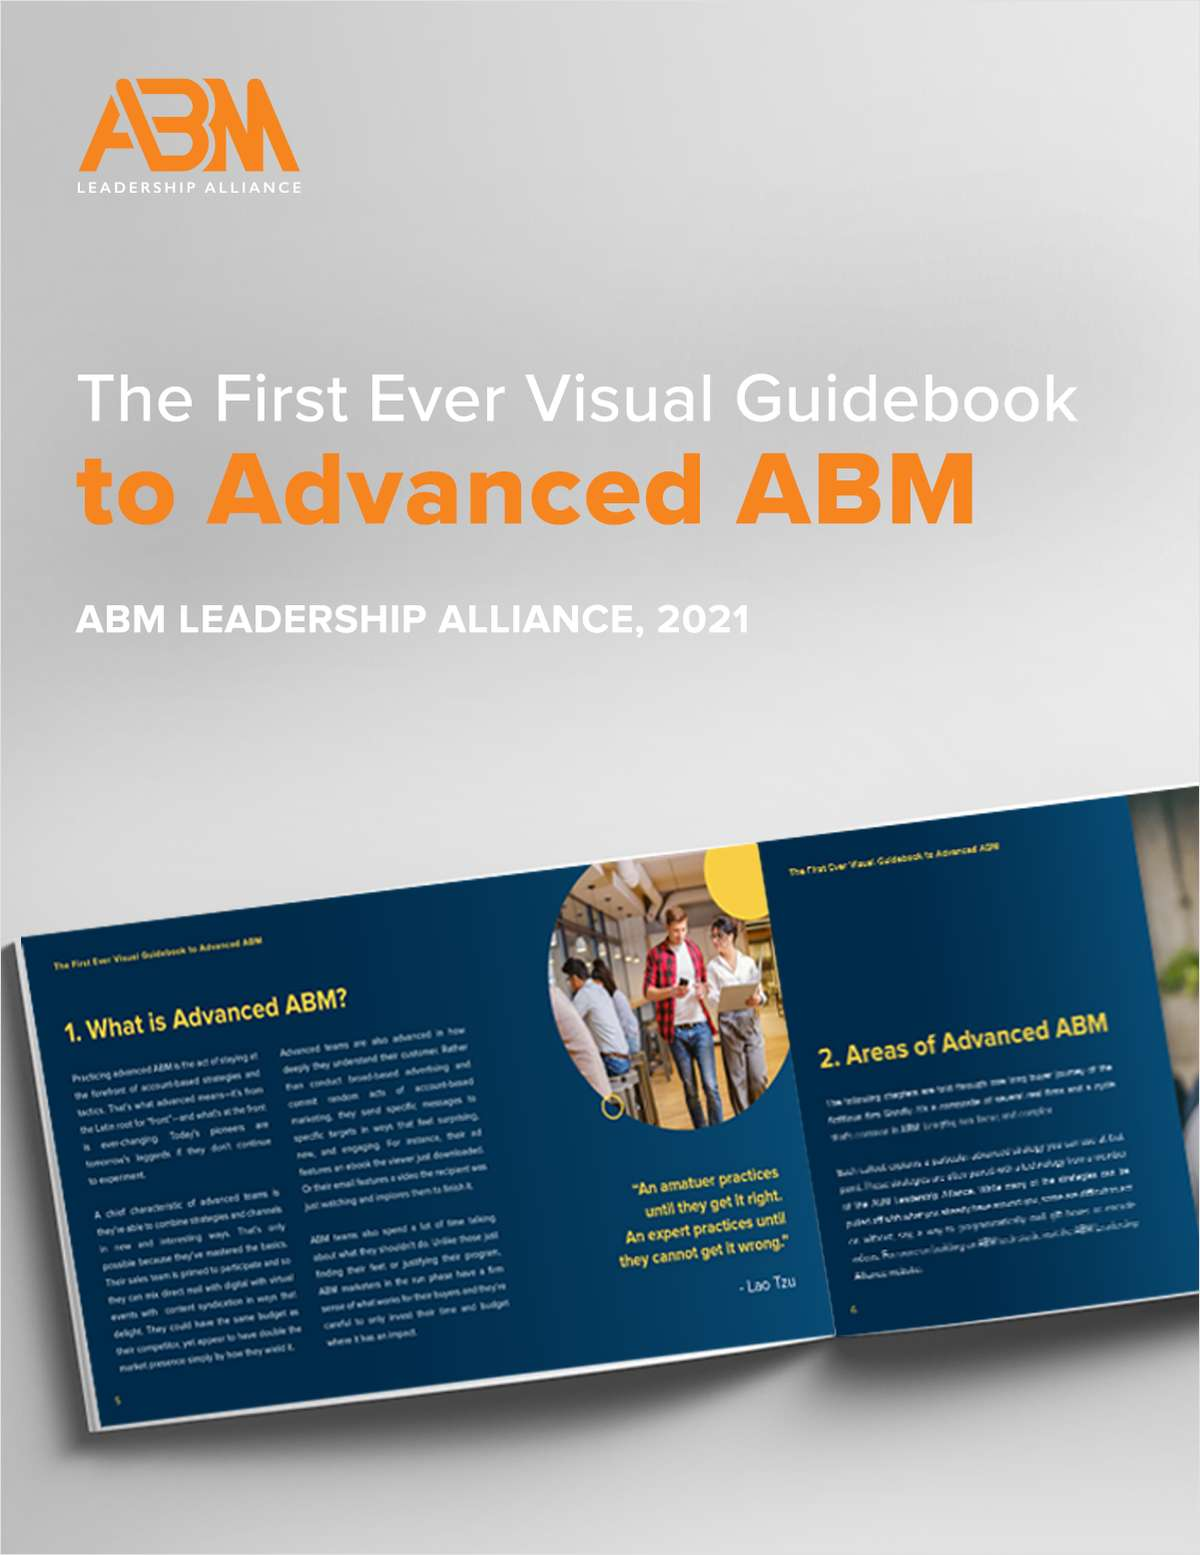 The First Ever Visual Guidebook to Advanced ABM